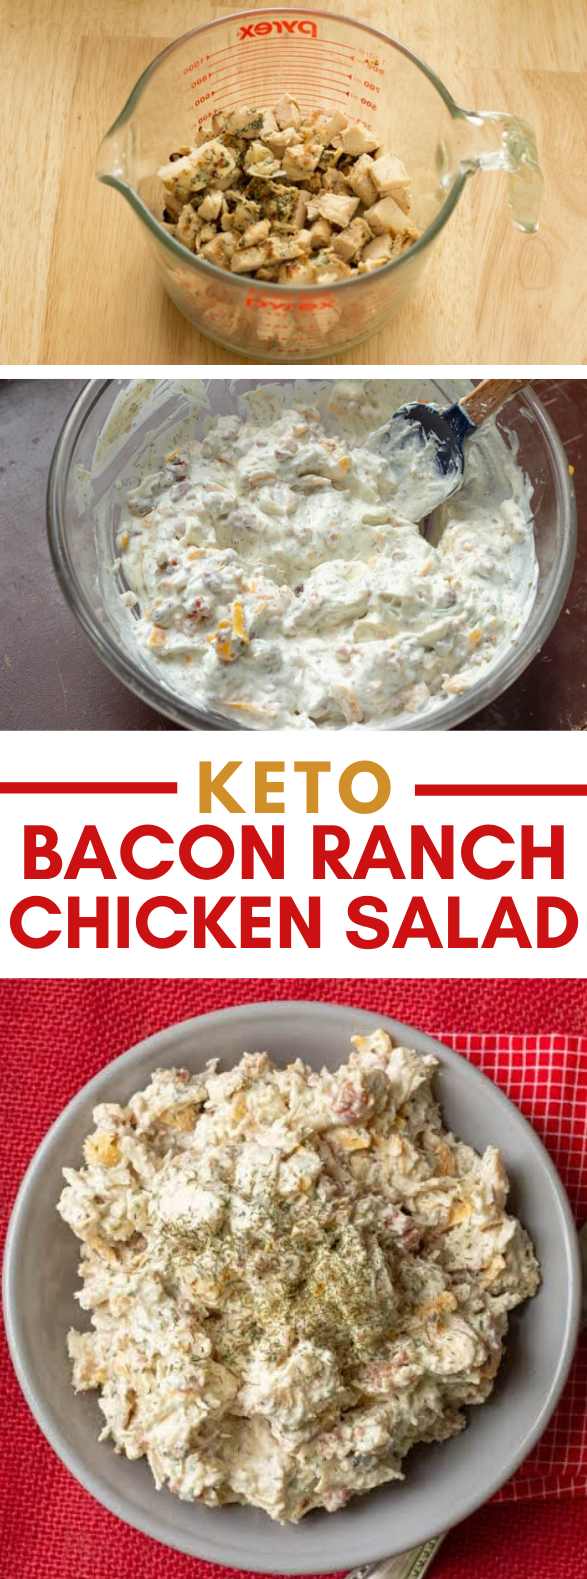 BACON RANCH EASY KETO CHICKEN SALAD – LOW CARB THM #diet #healthy